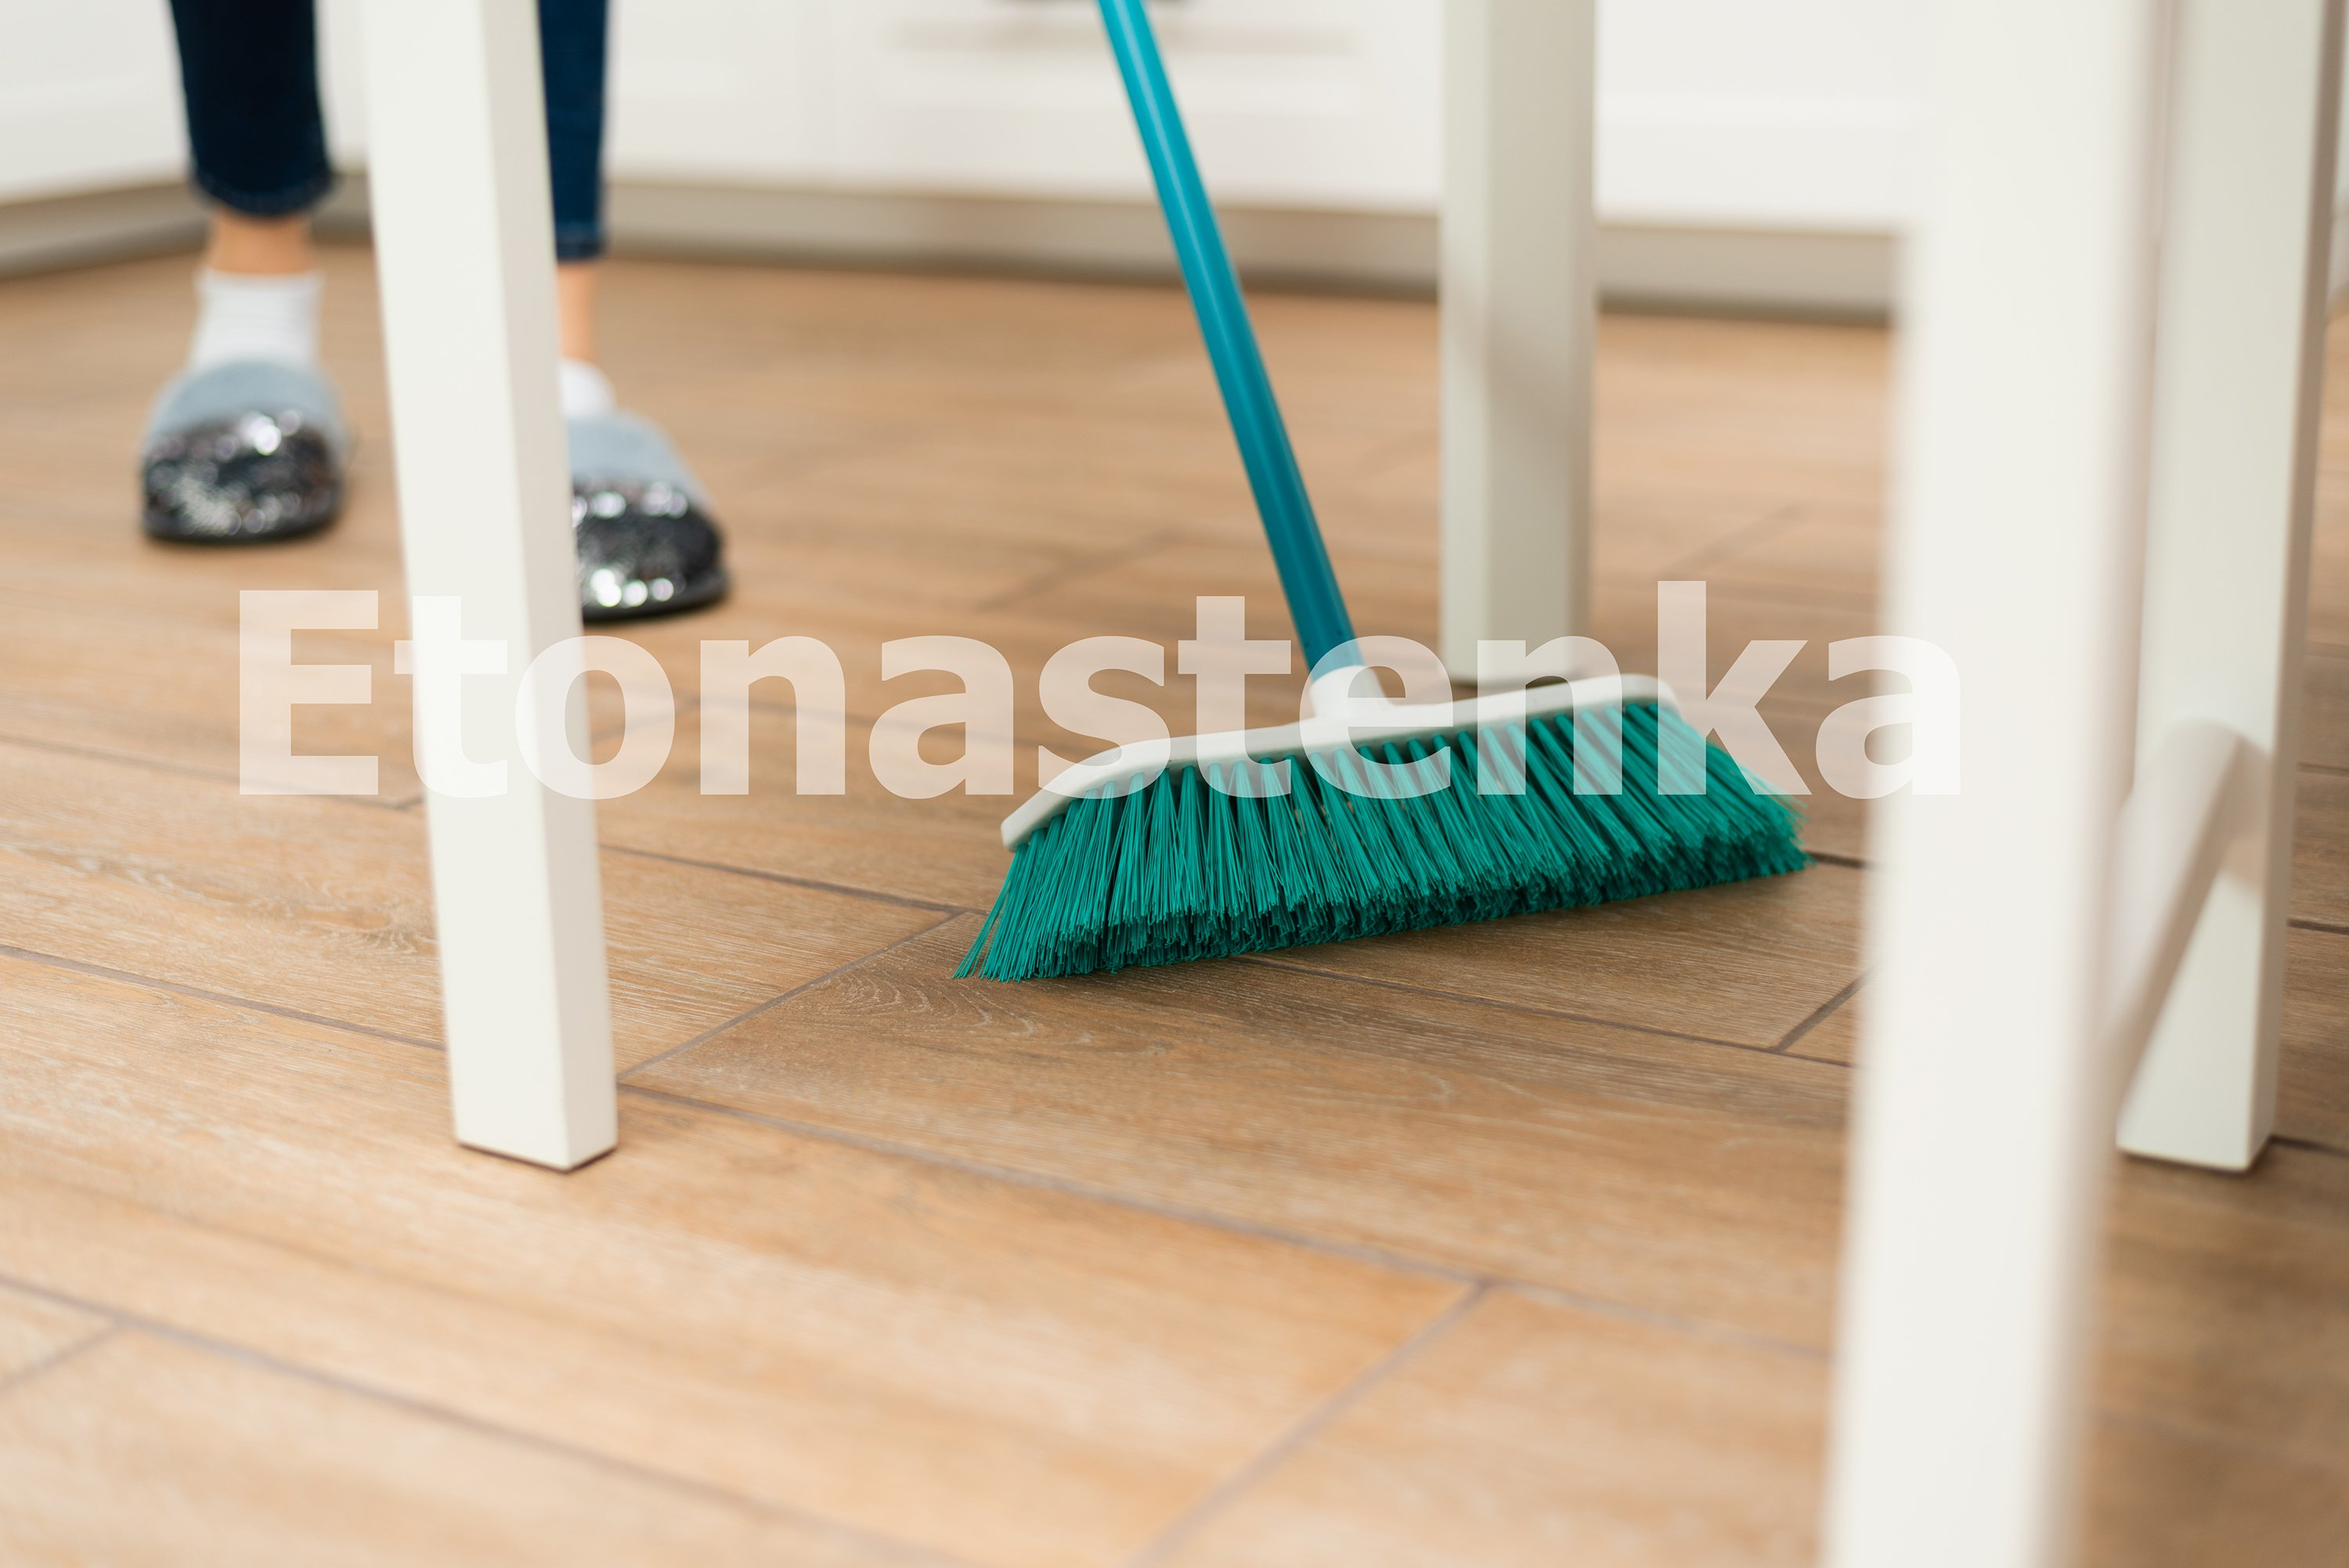 10 photos of house cleaning. Spring cleaning. example image 6